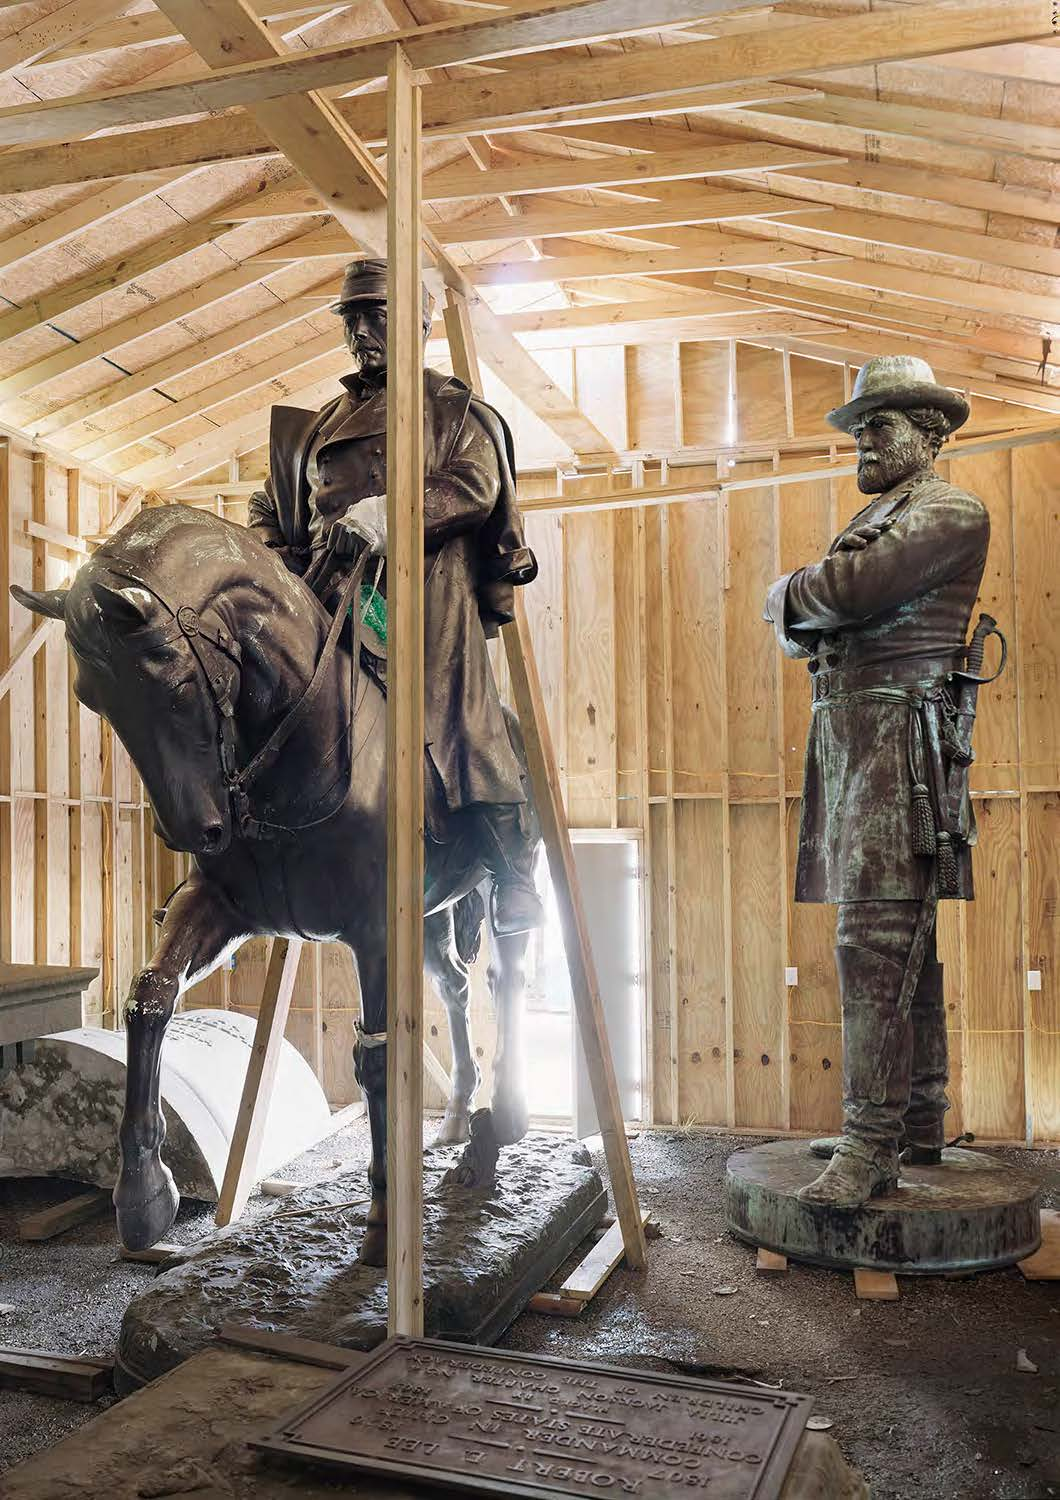 Two statues, one of a man and a man on a horse, stand in a plywood shed.